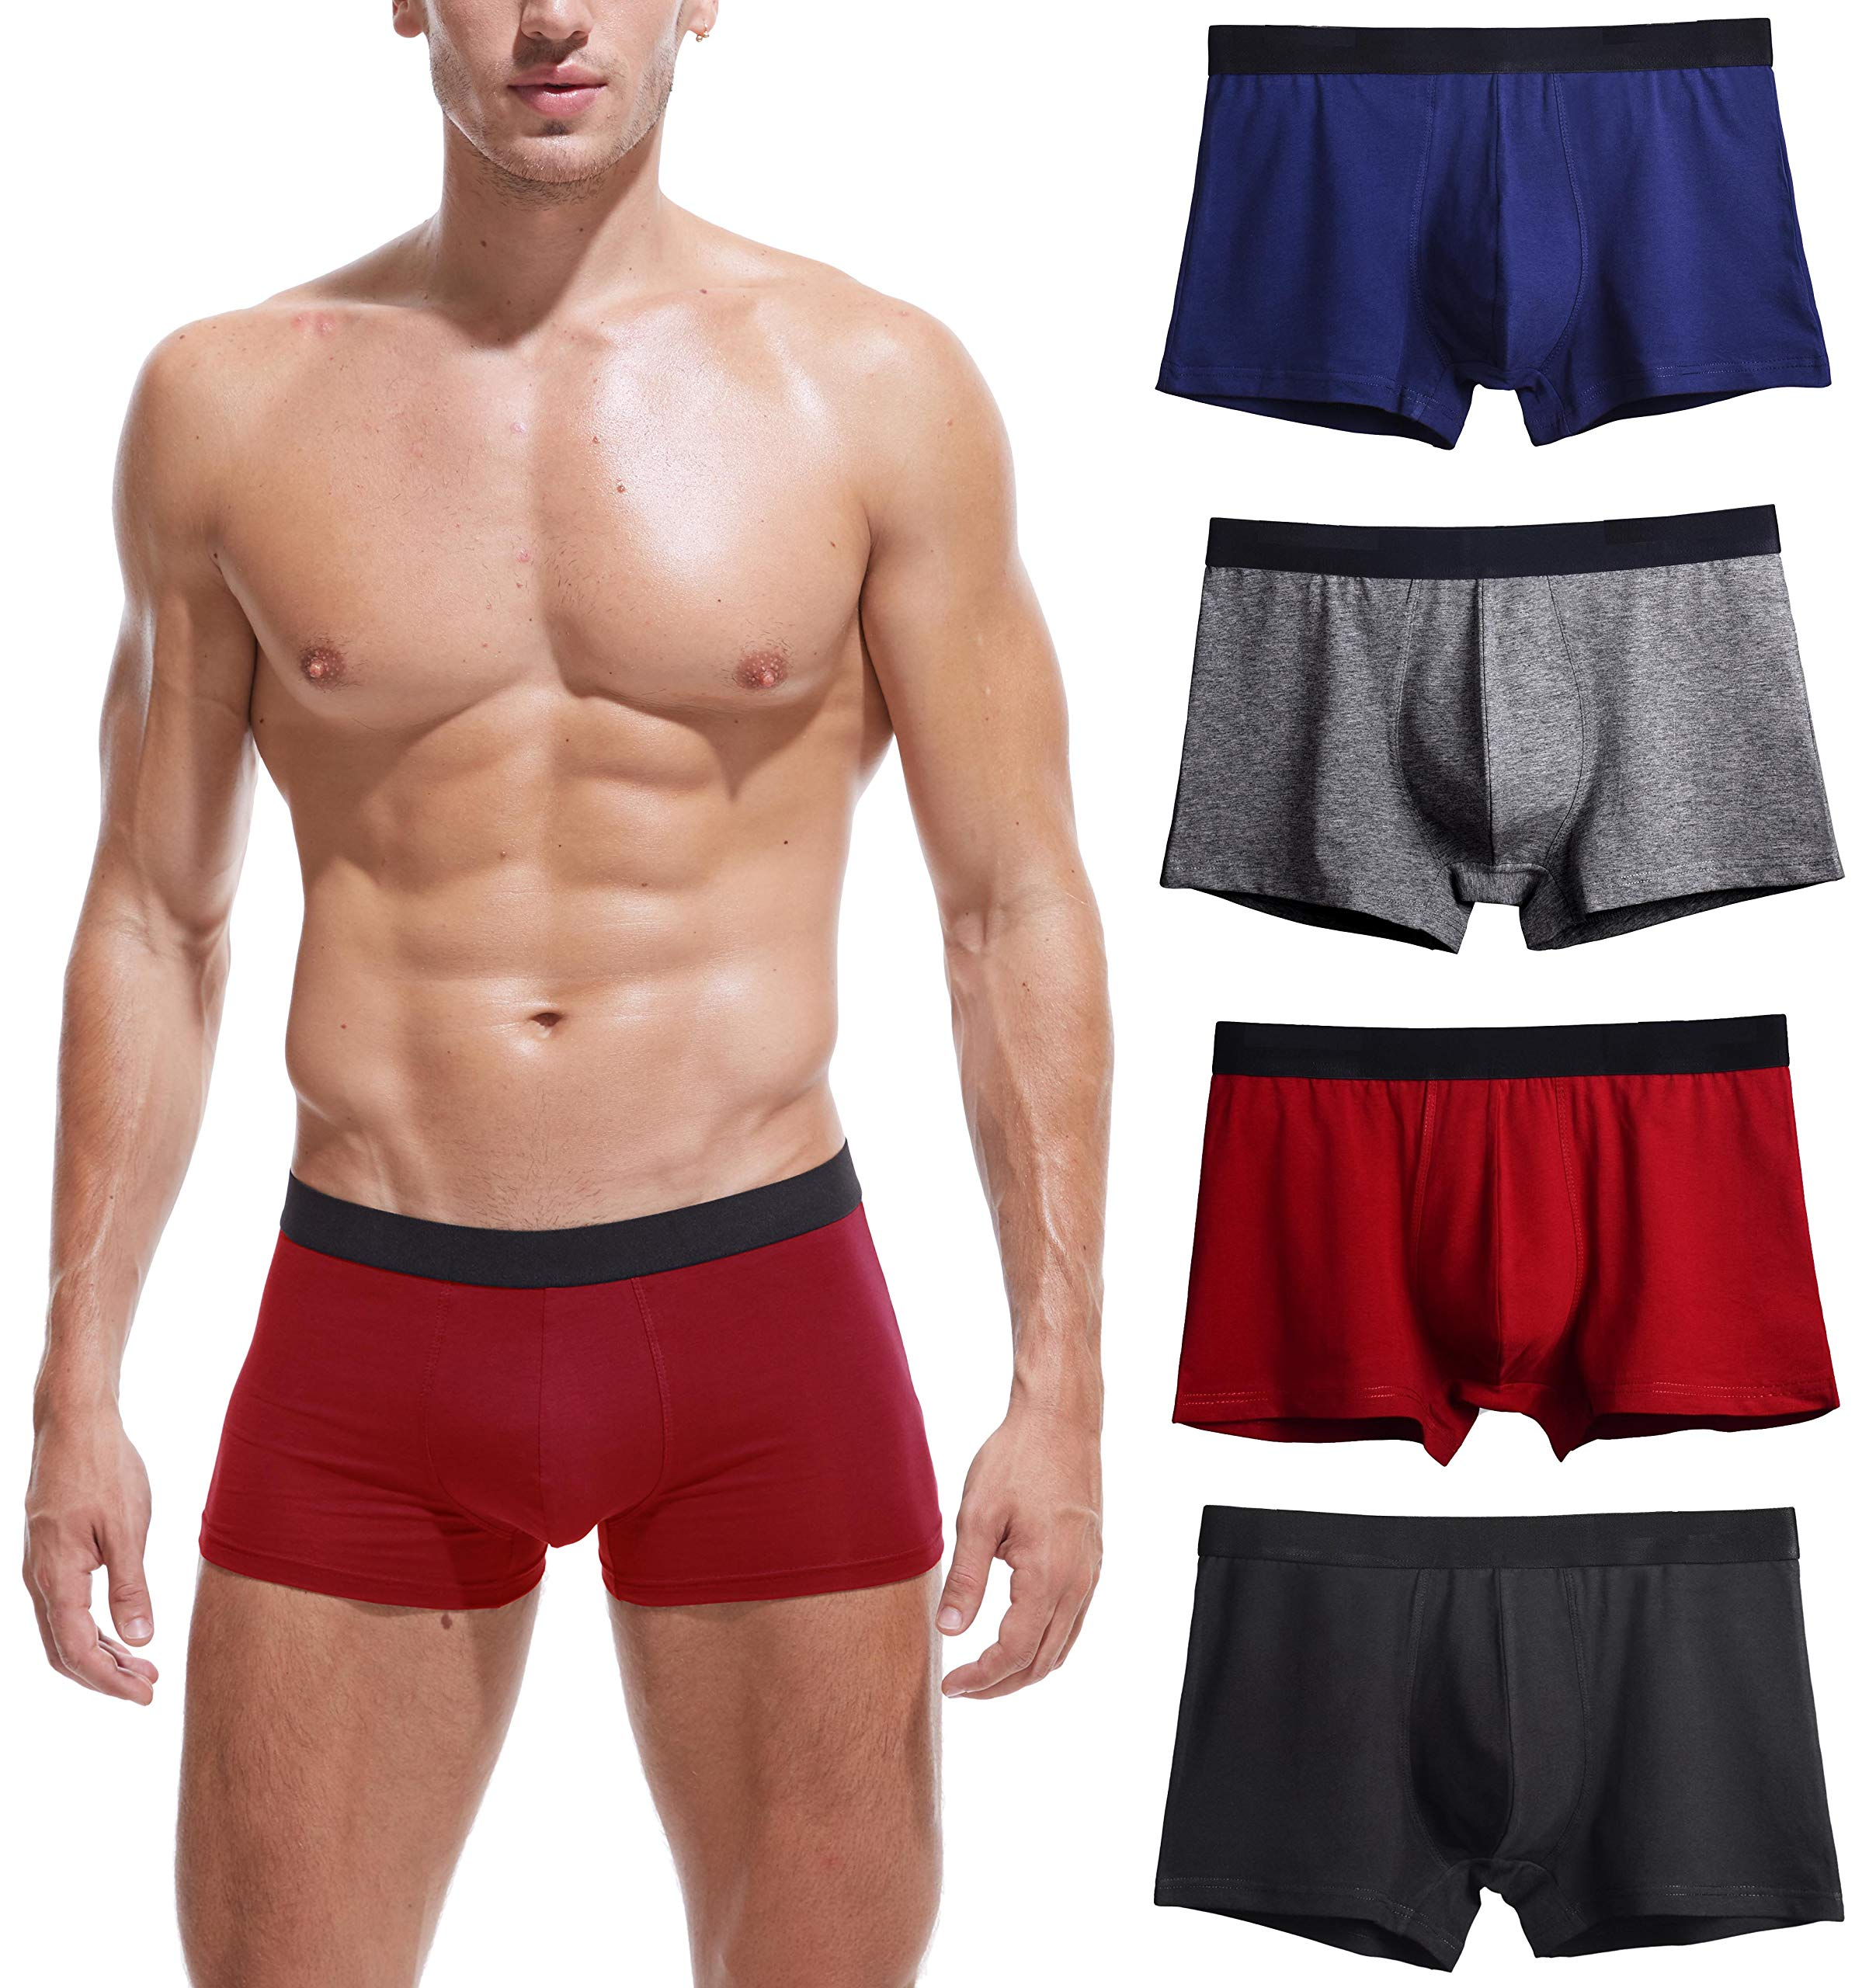 2761217113c4f5 Men's No Ride-up Boxer Briefs Stretch Comfortable Breathable Cotton  Underwear 4 Pack product image